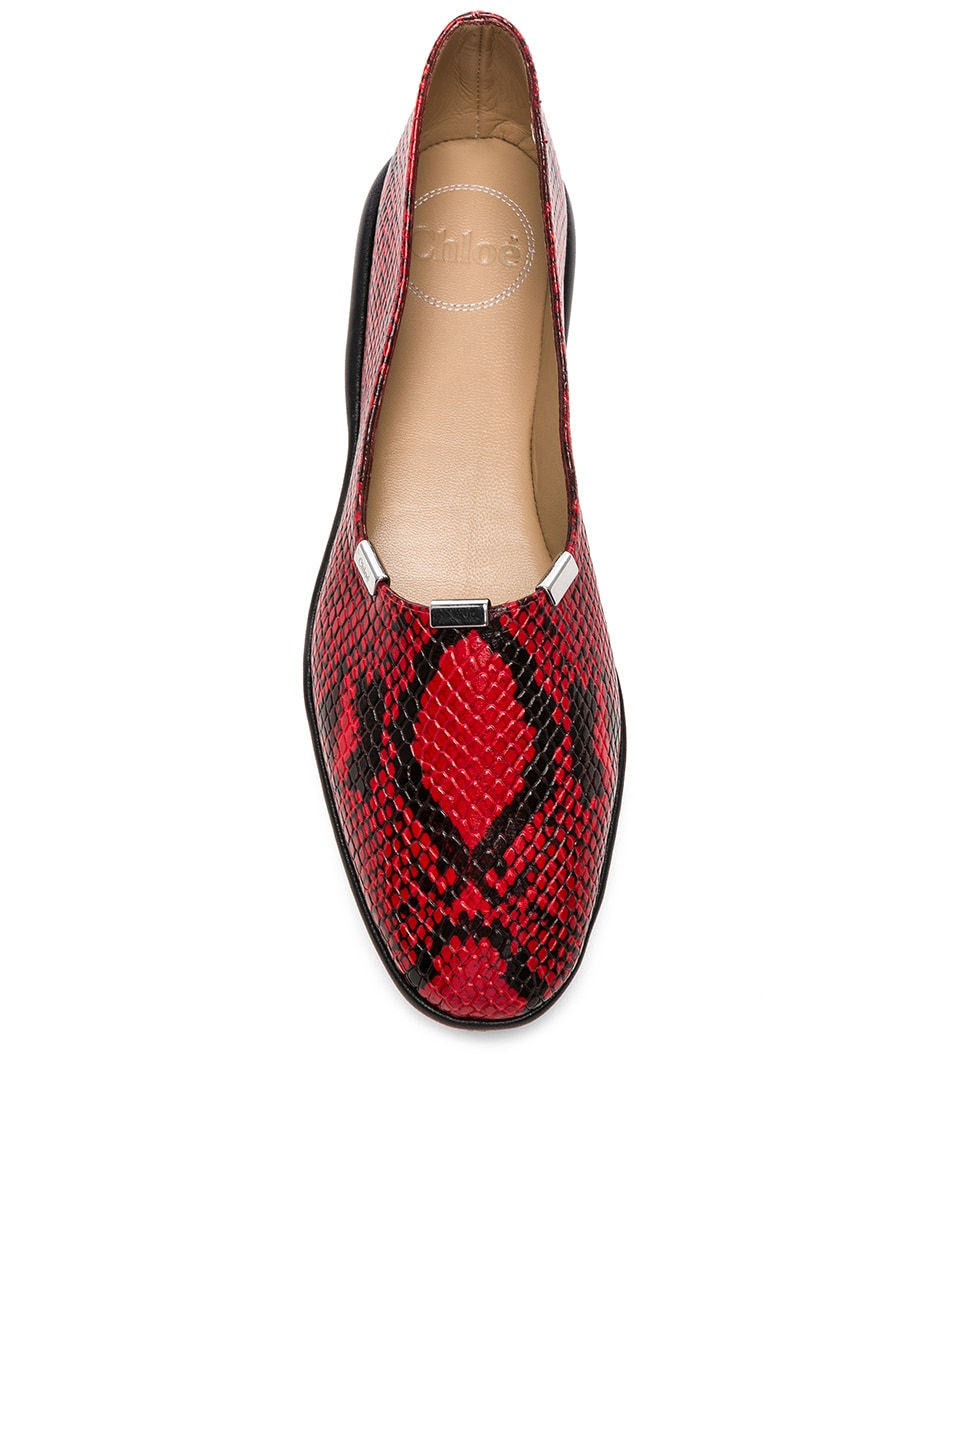 Image 4 of Chloe Skye Python Print Leather Flats in Gypsy Red